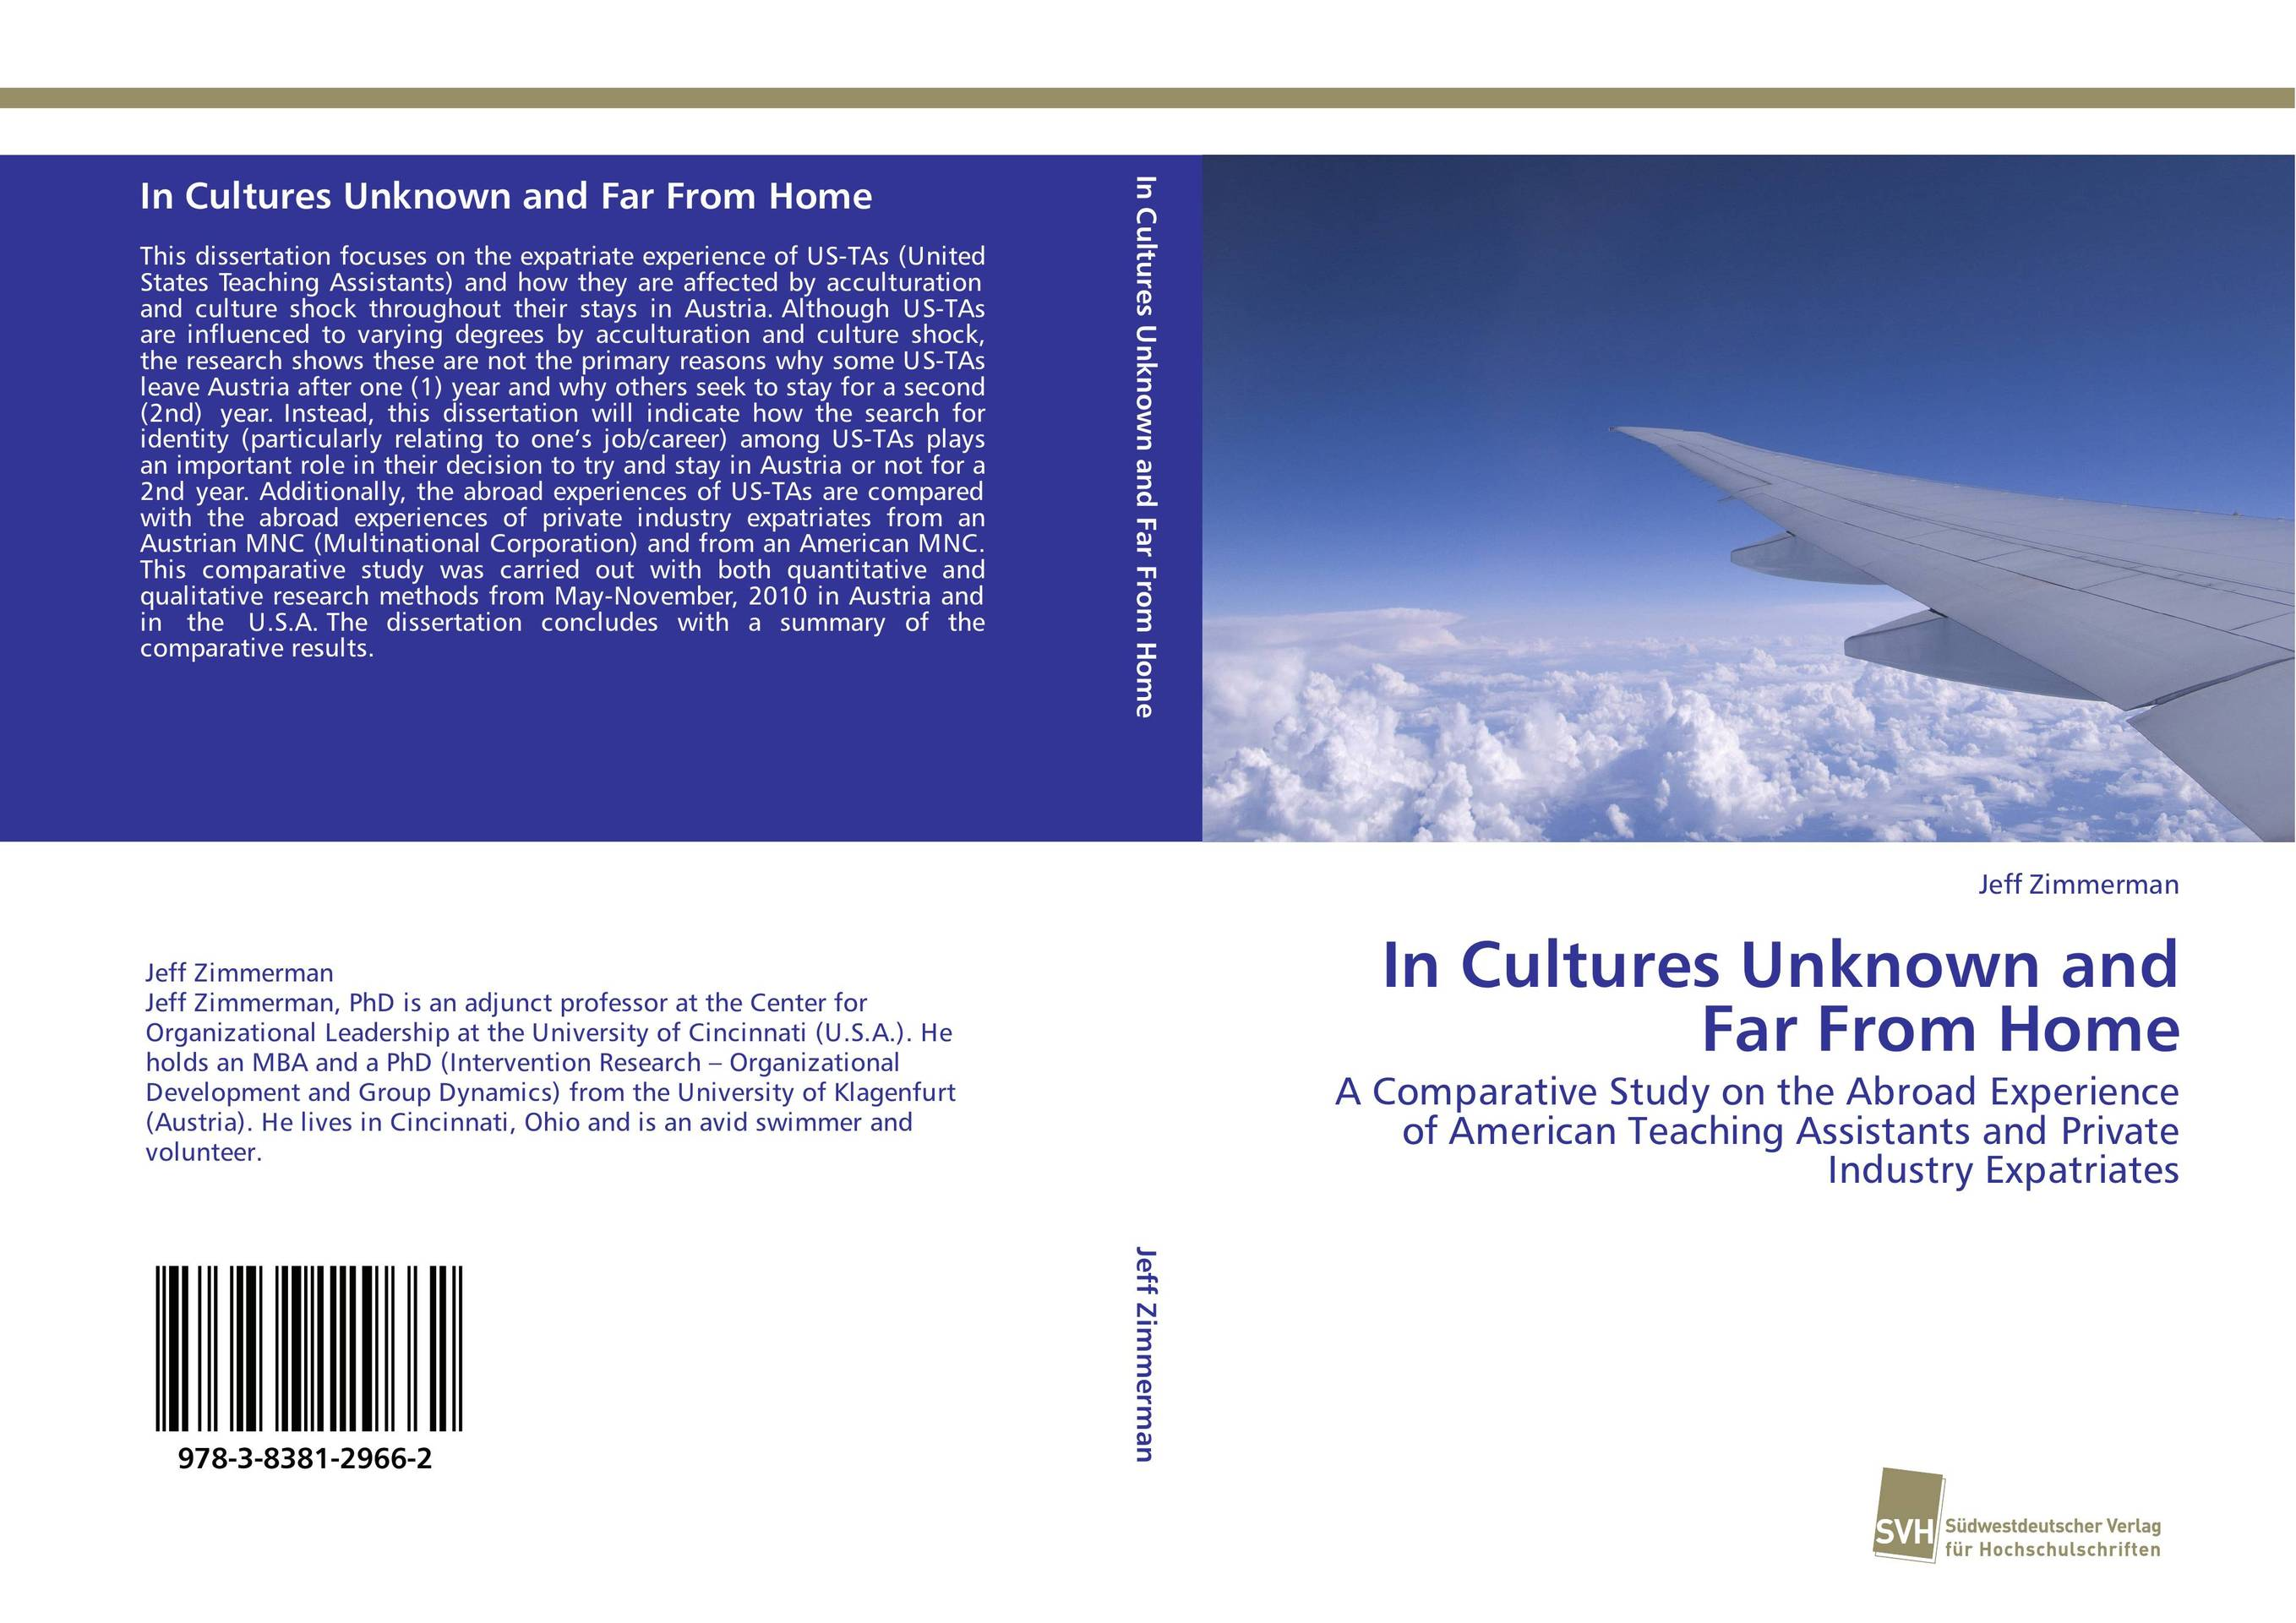 In Cultures Unknown and Far From Home